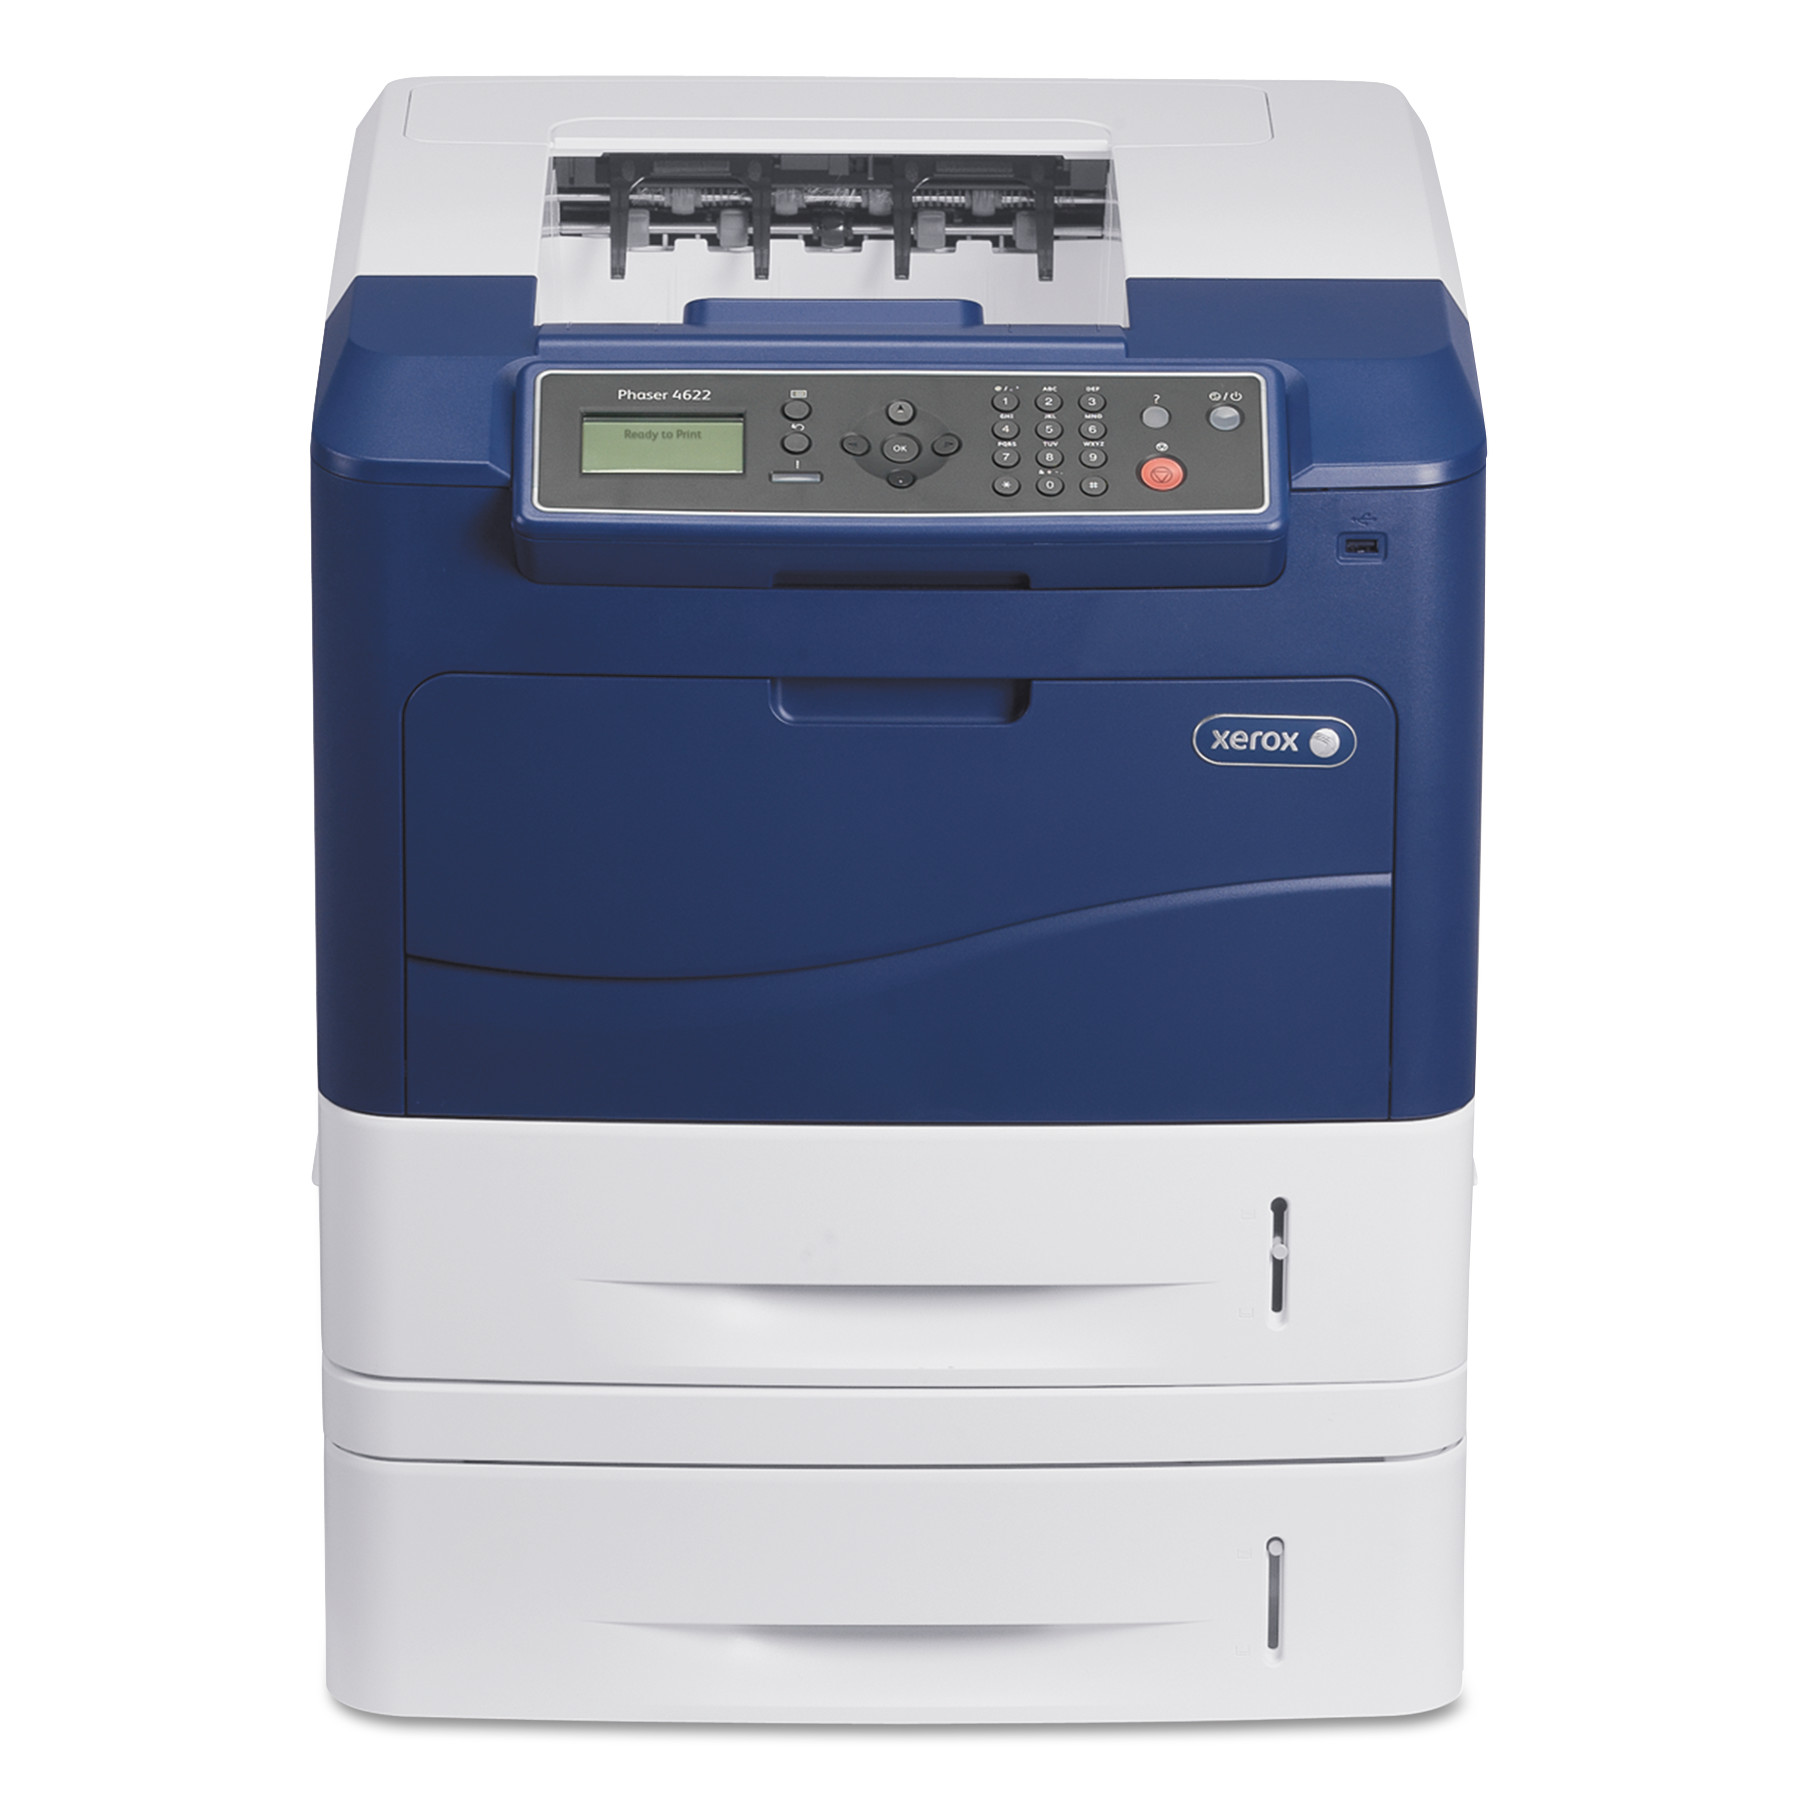 Xerox Phaser 4622 Black and White Printer, with Additional Paper Tray